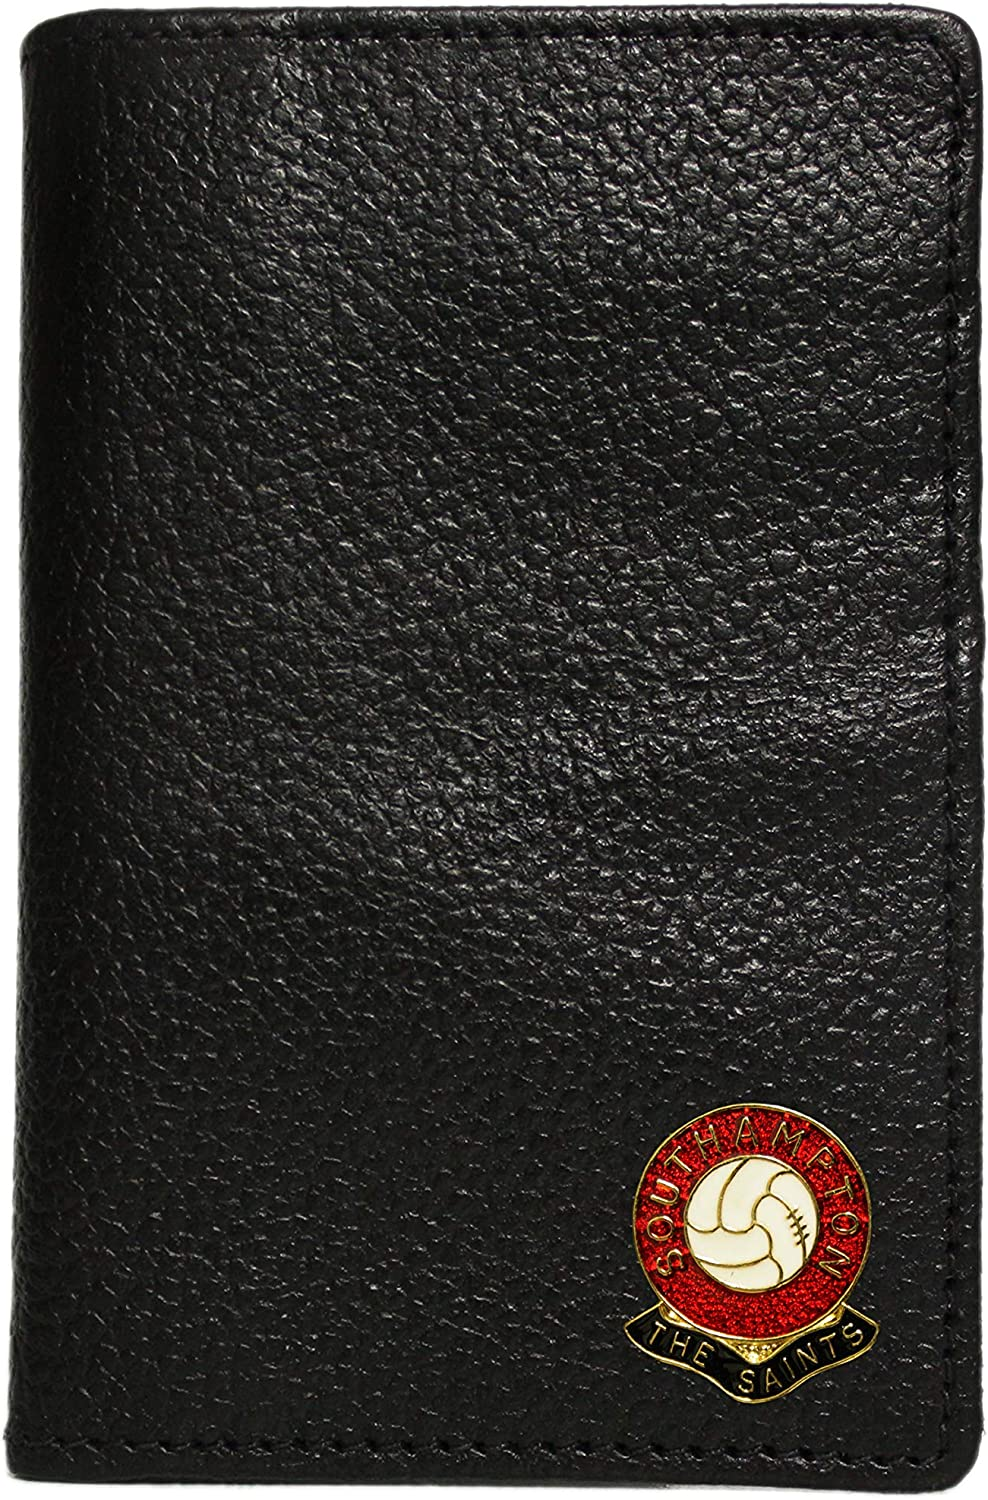 gaixample.org Southampton Football Club Leather Credit Card case ...